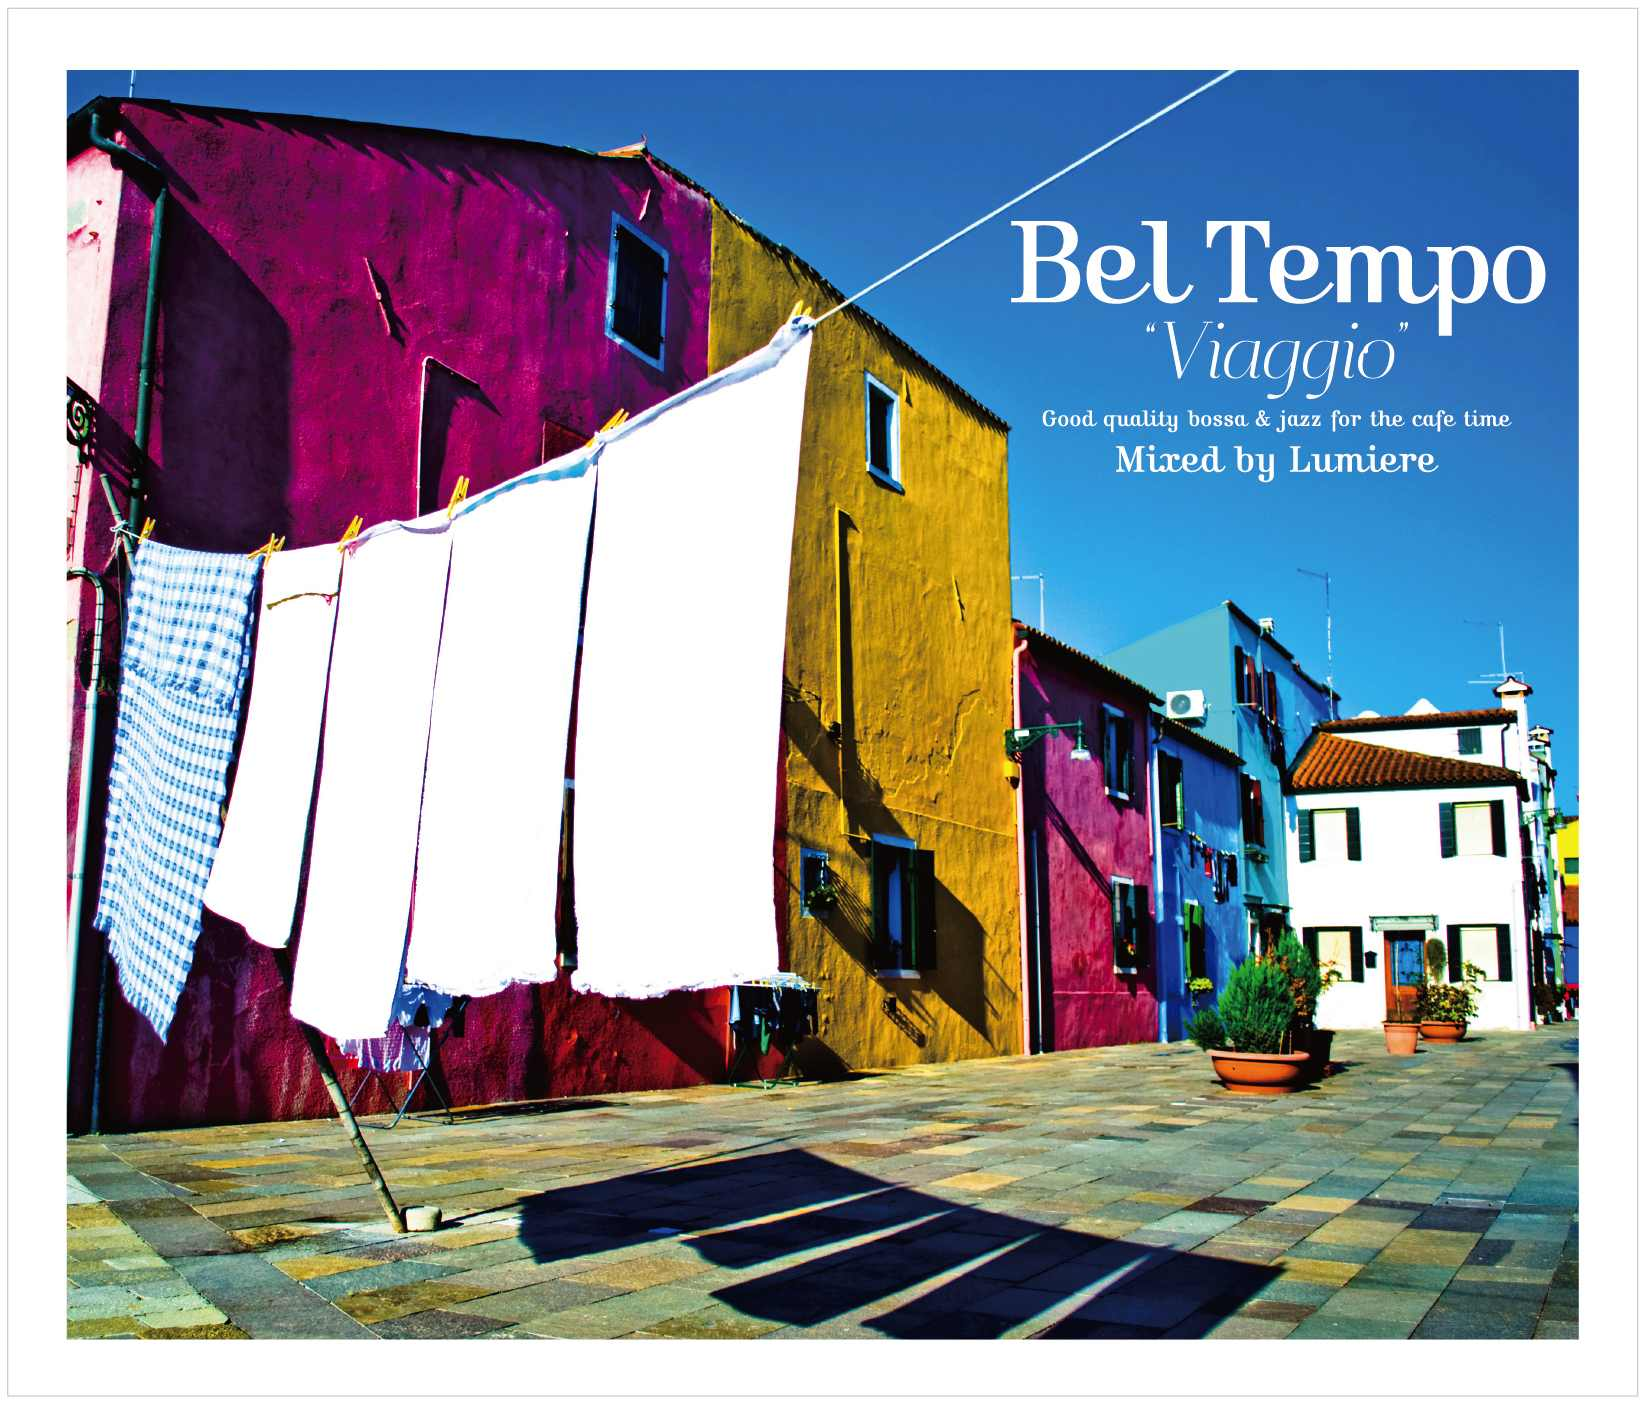 オムニバス_Bel Tempo Viaggio~good quality bossa&jazz for the cafe time~